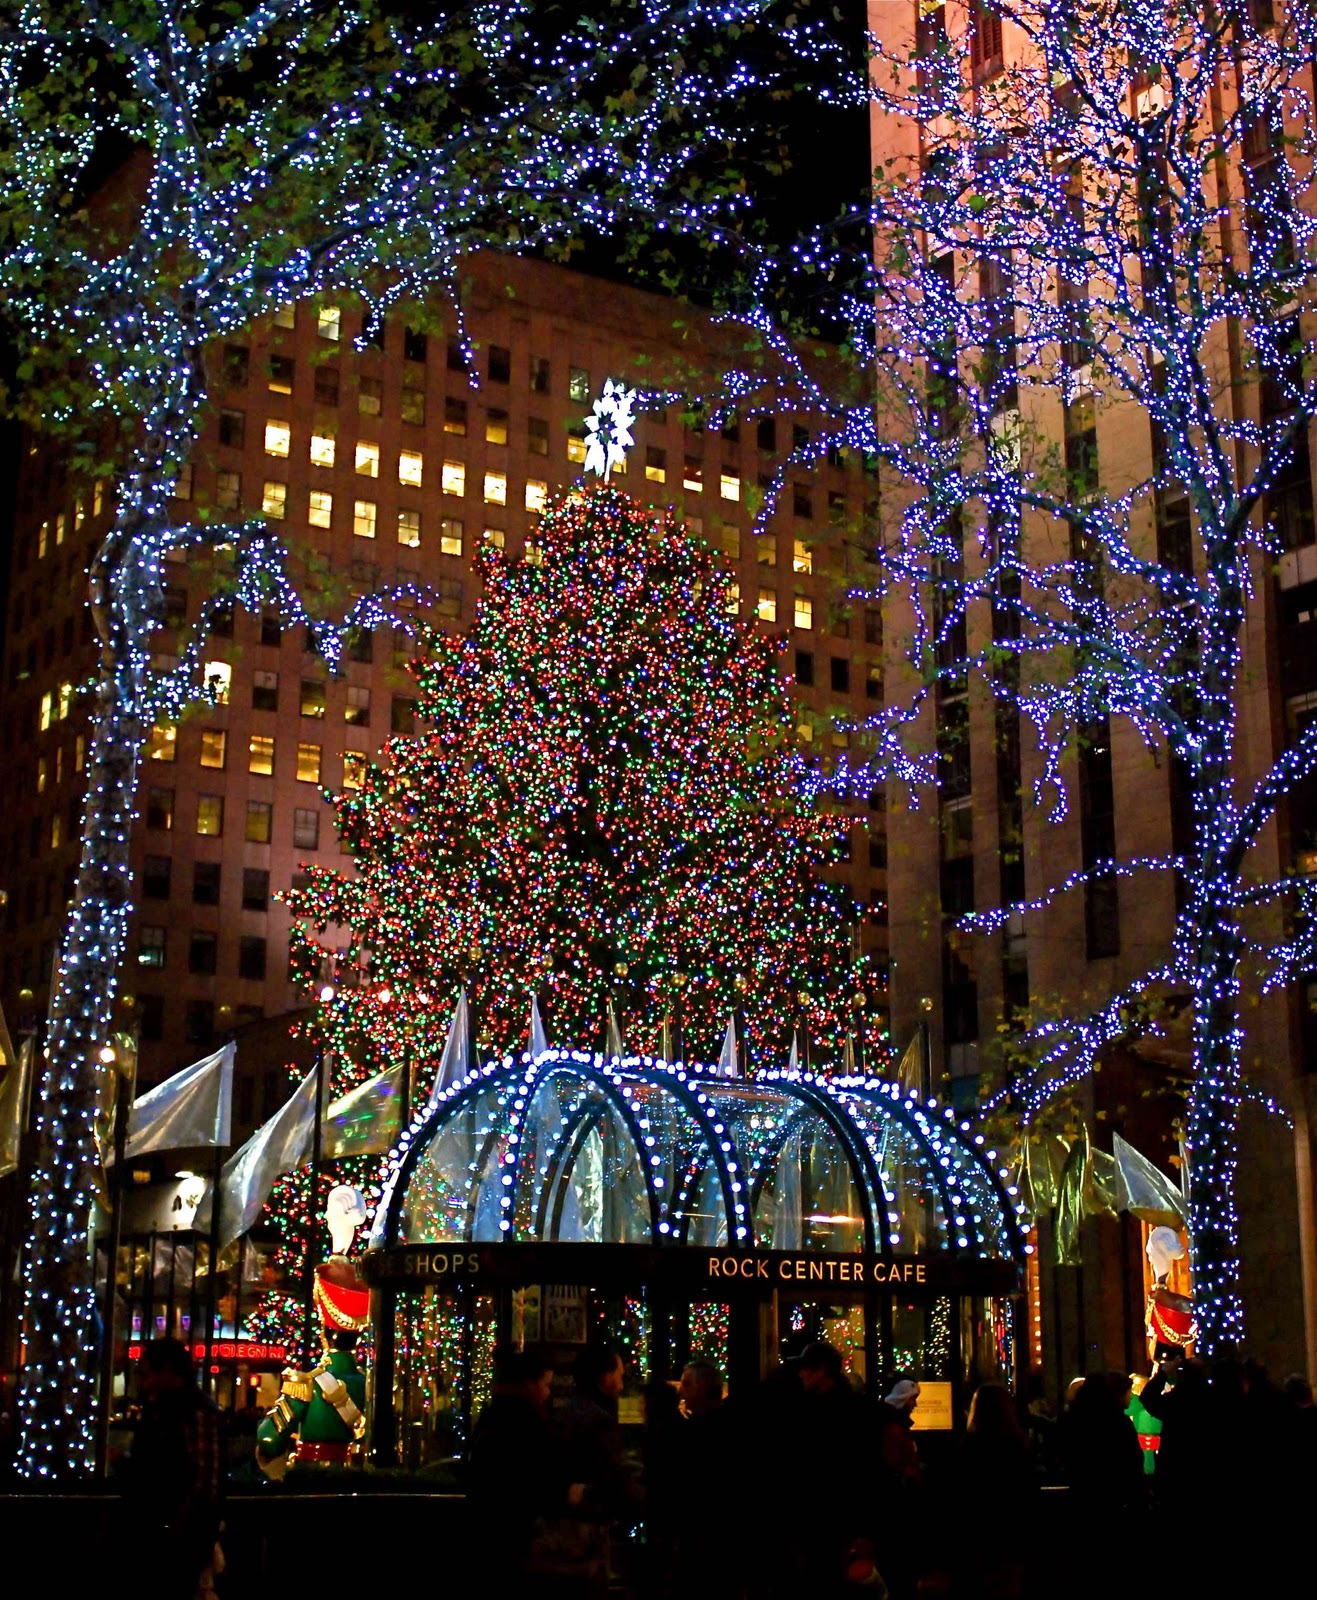 NYC ♥ NYC: Rockefeller Center Lights The Iconic Christmas Tree